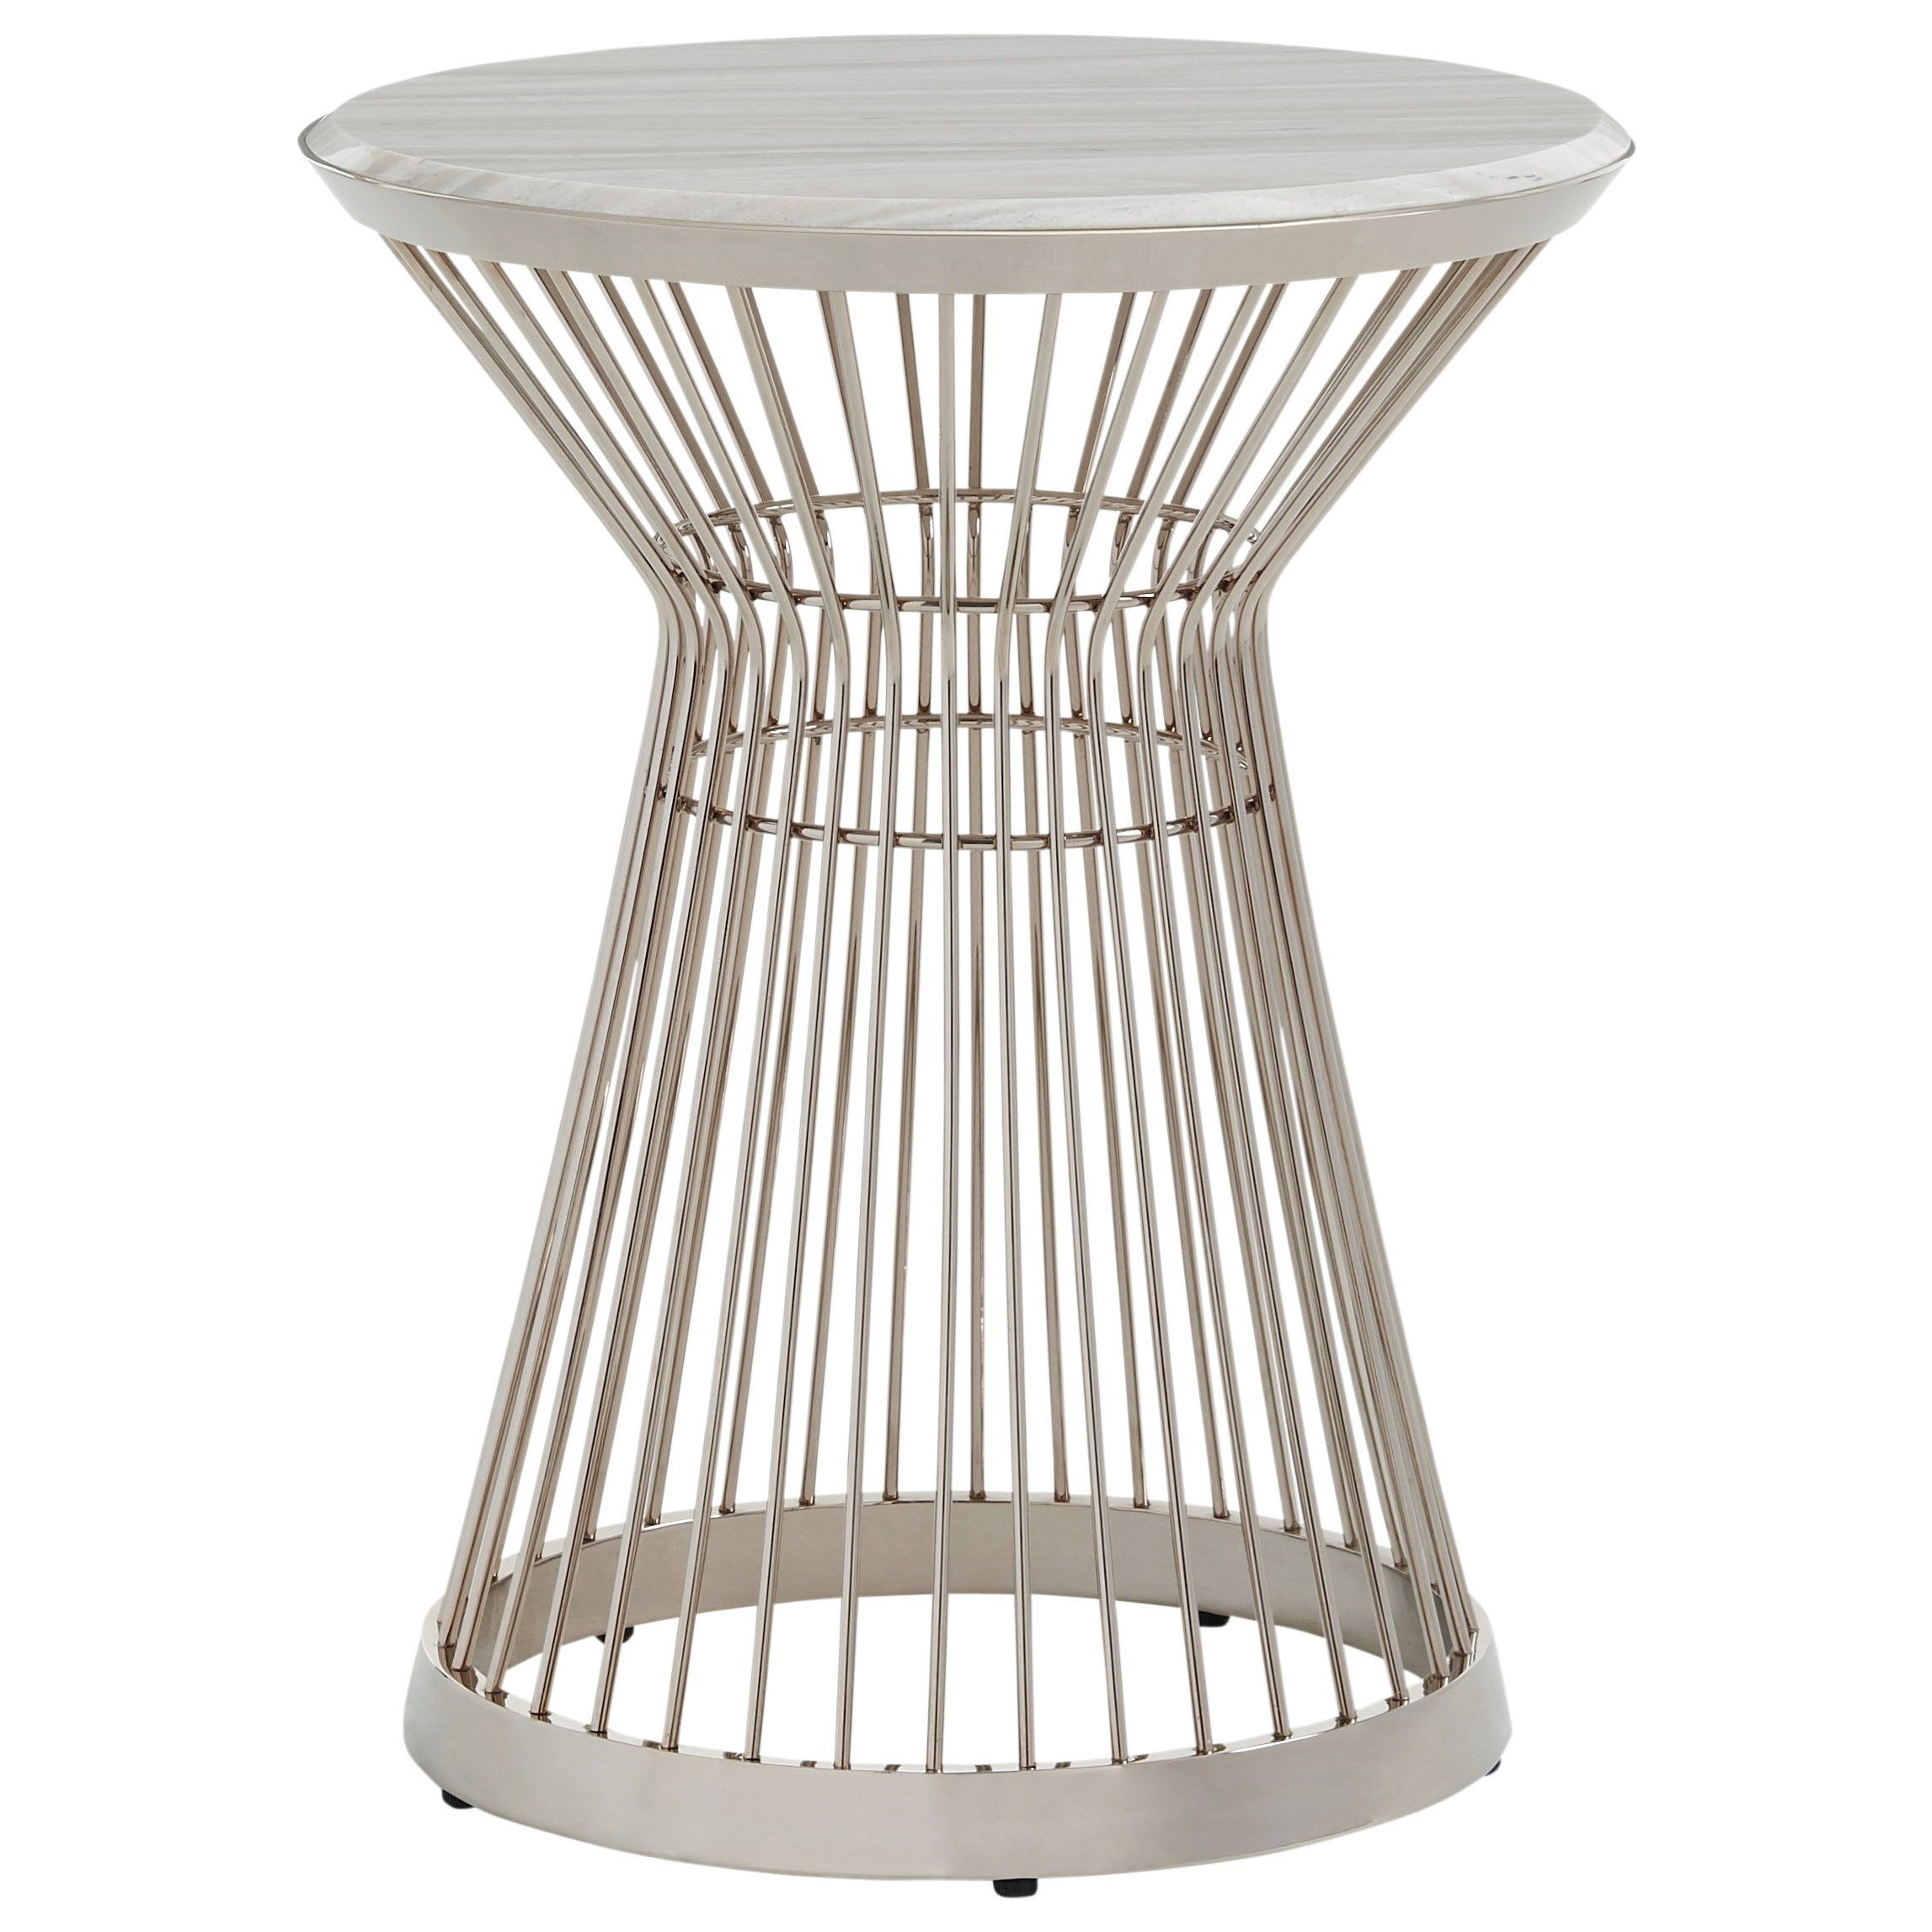 Ariana Martini Stainless Accent Table by Lexington at Jacksonville Furniture Mart